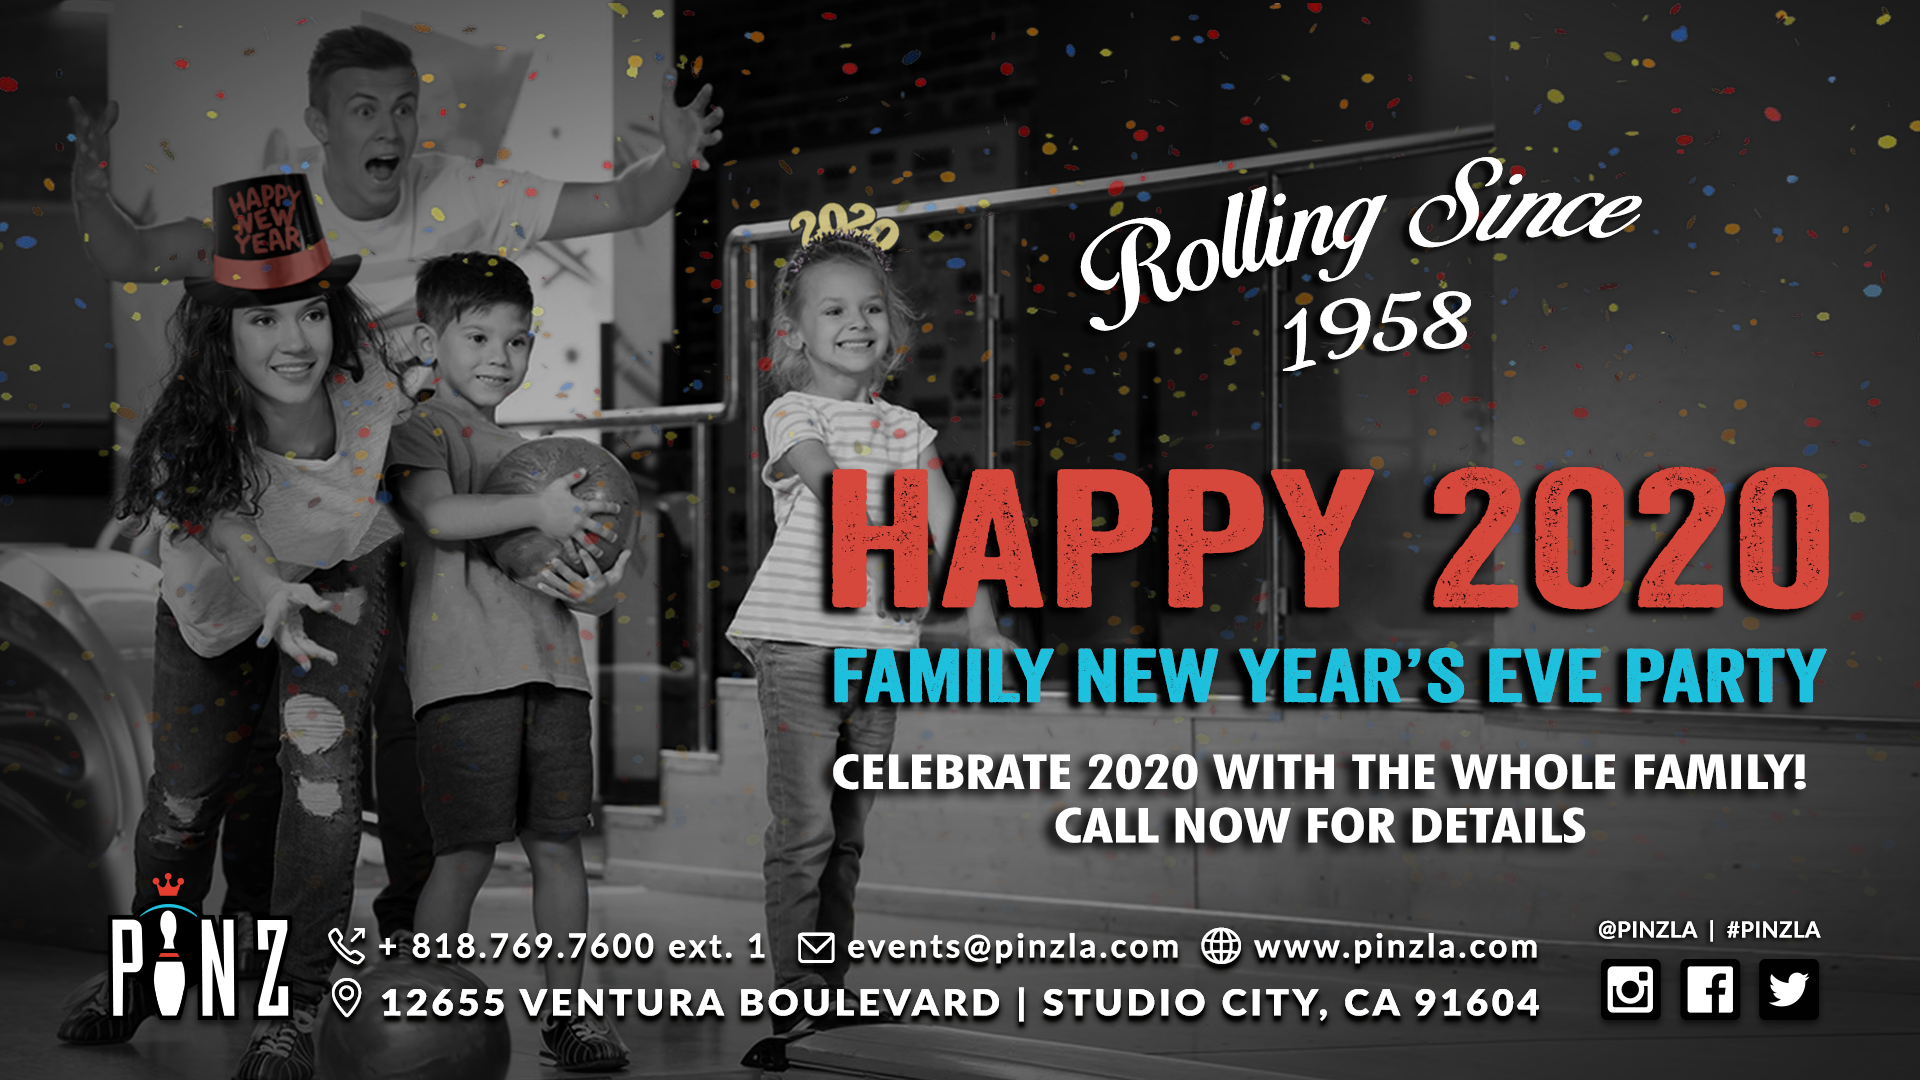 Family New Year's Eve Party - Call Now for Details - 818.769.7600 extension 1